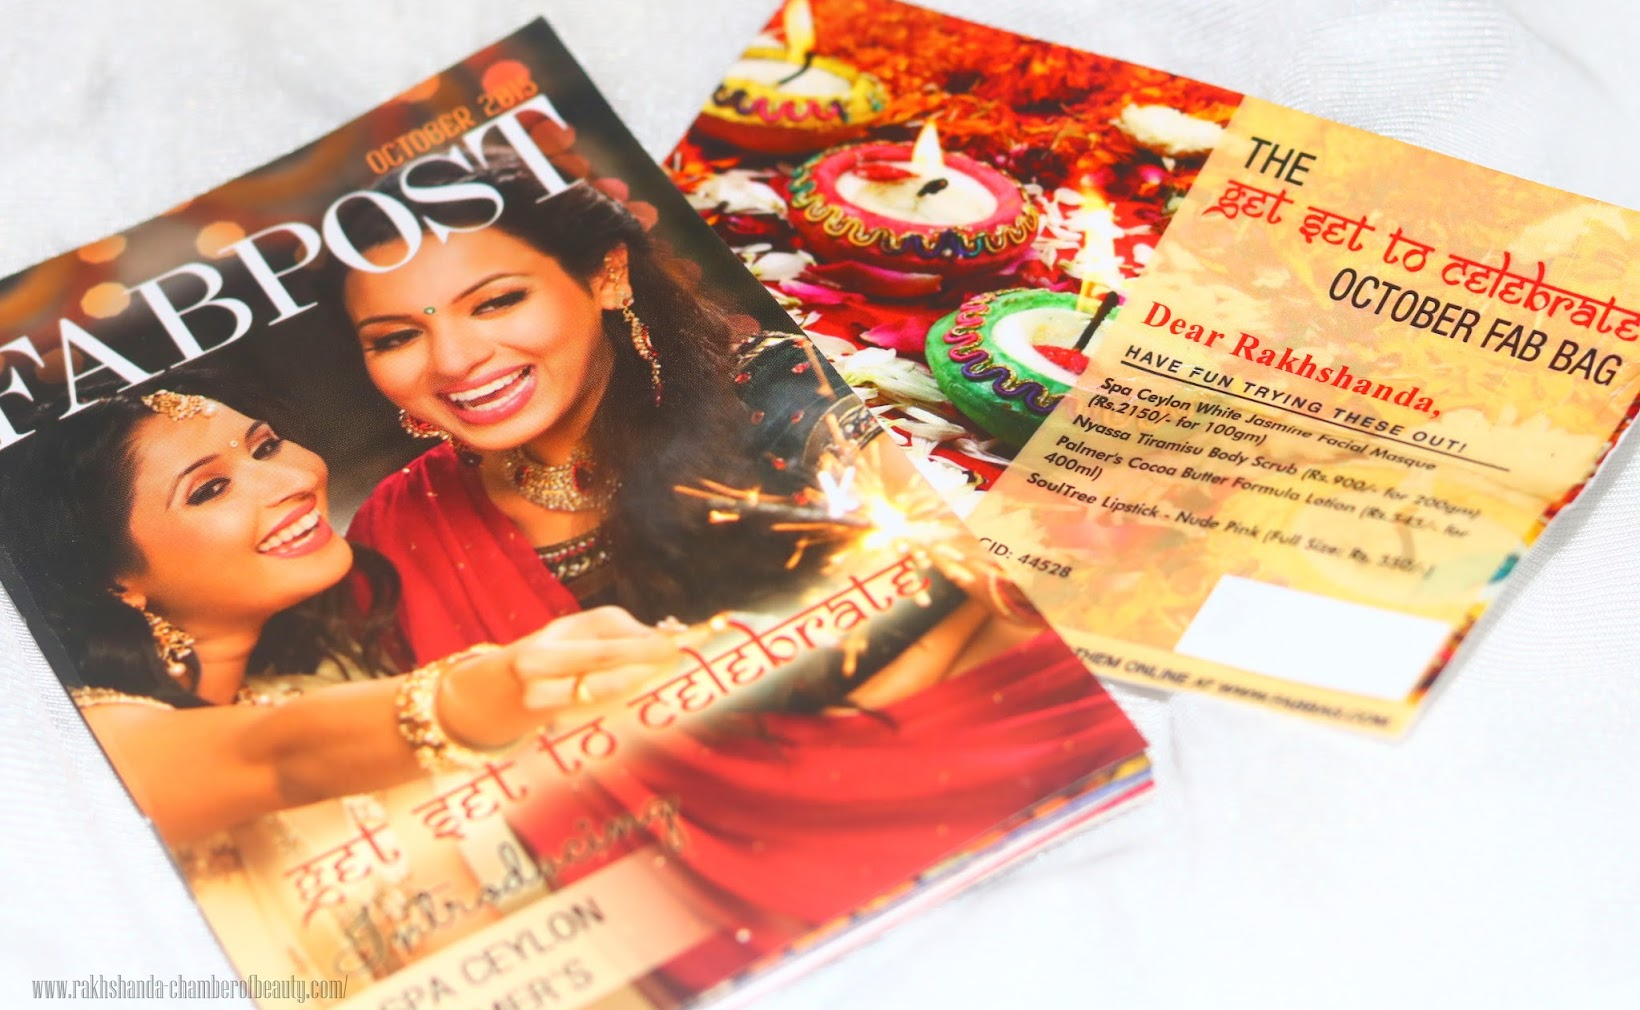 Fab Bag October 2015 review, swatches & photos, Indian beauty blogger, Chamber of Beauty